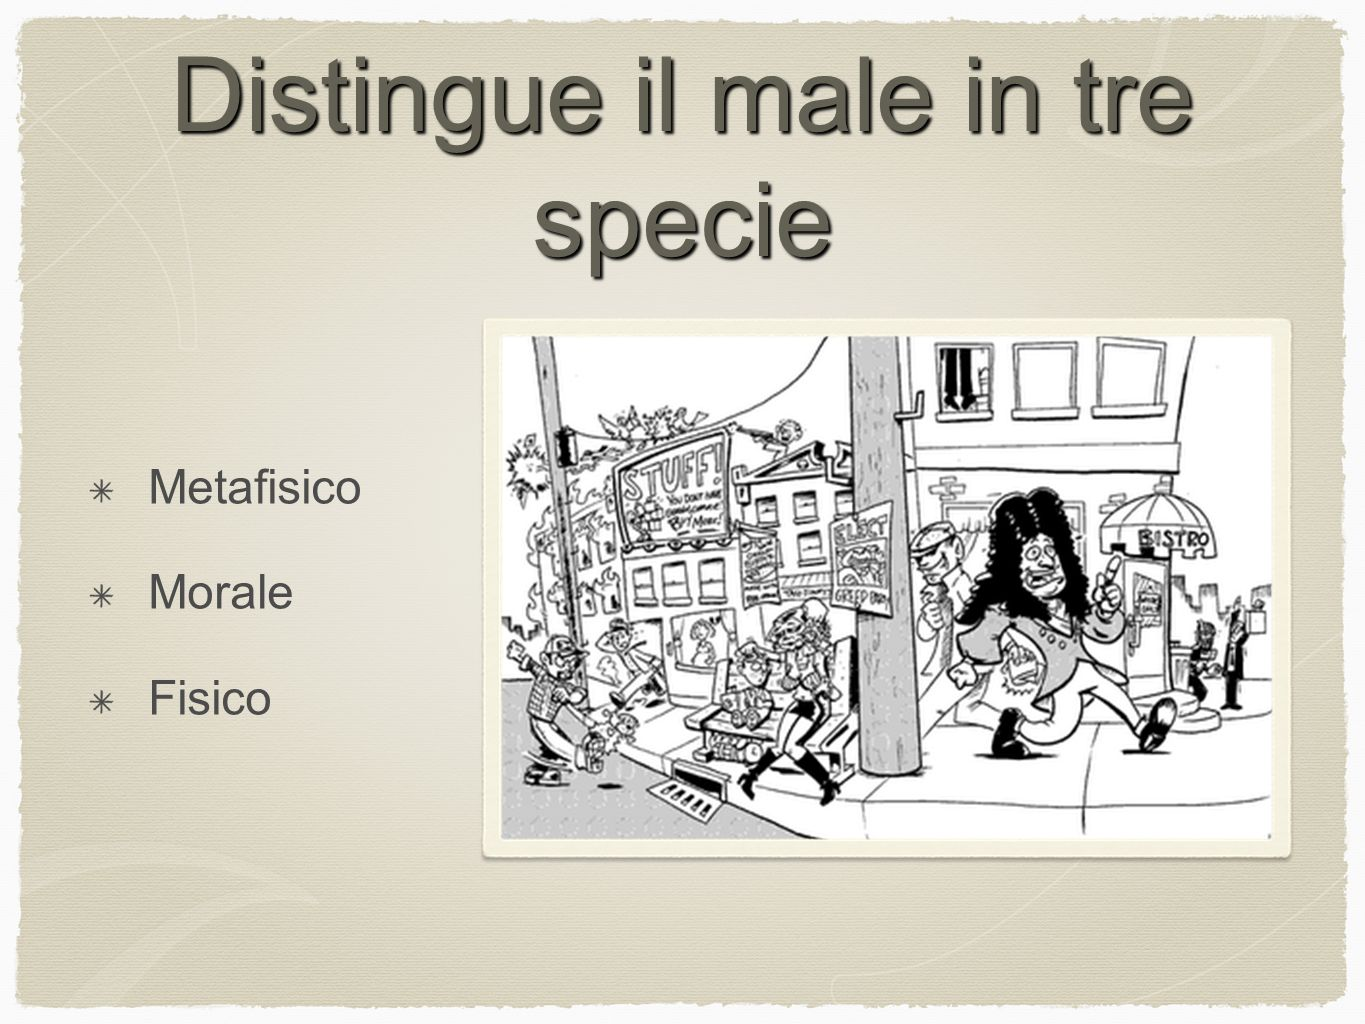 Distingue il male in tre specie